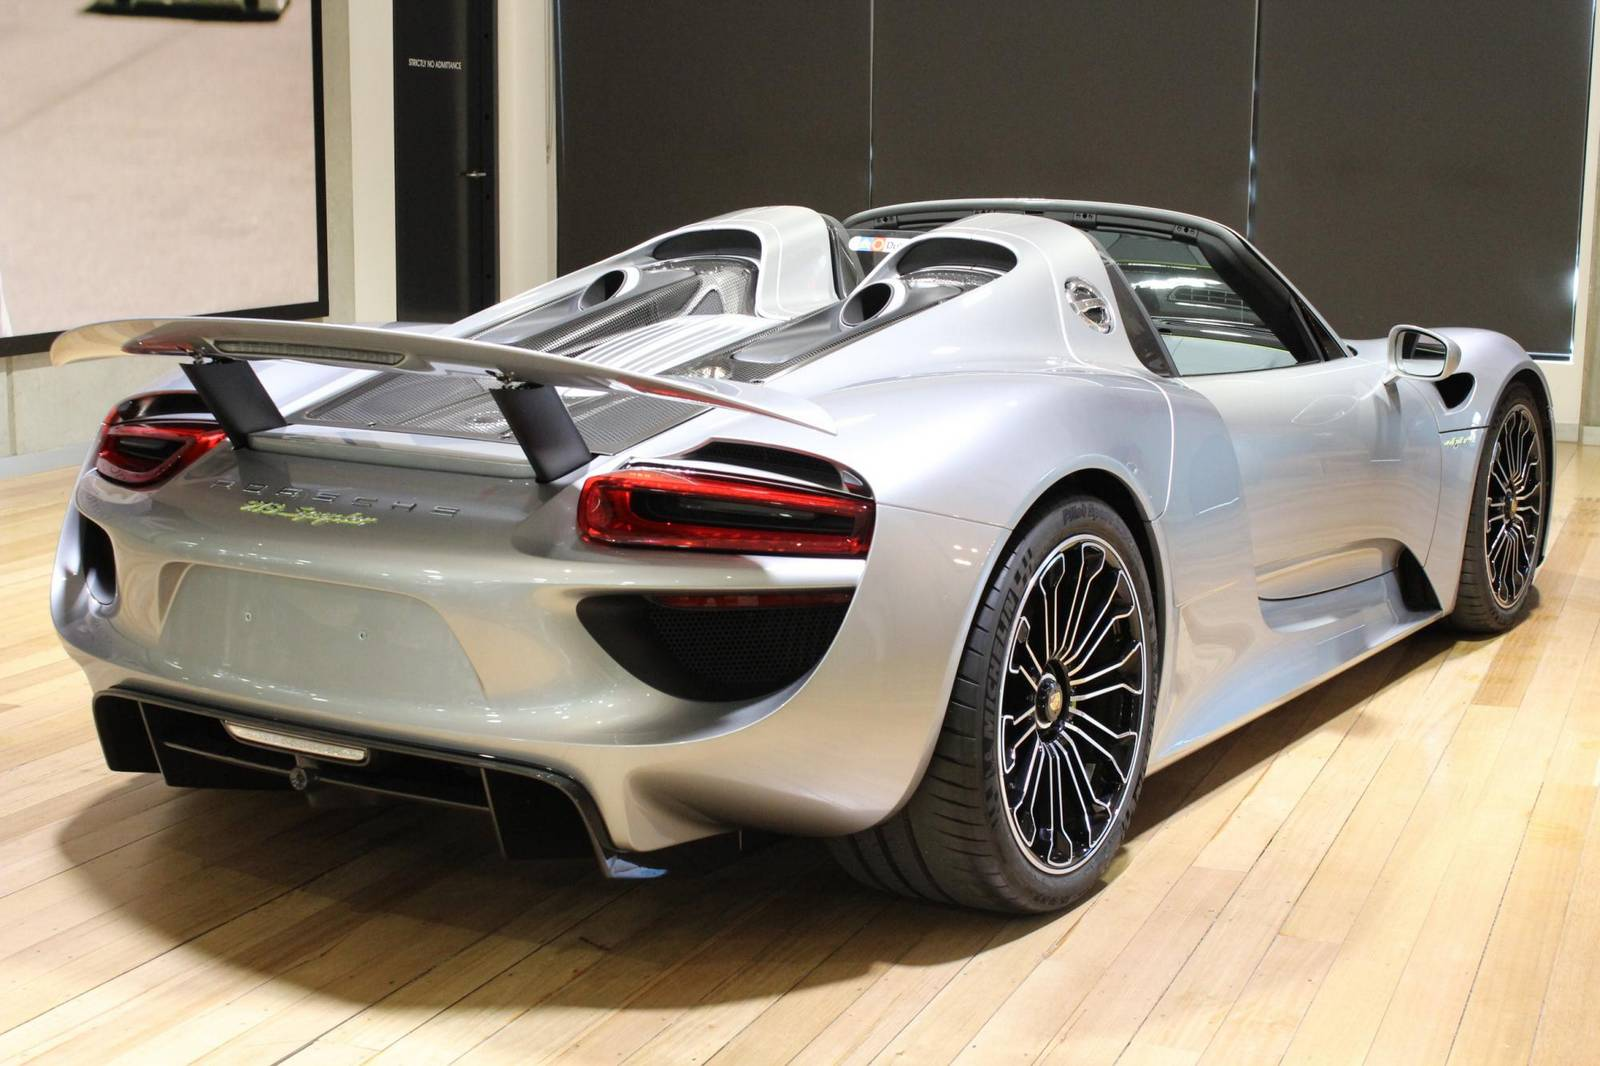 Carbon Fibre Car Wheels >> Silver Porsche 918 Spyder For Sale in Australia - GTspirit